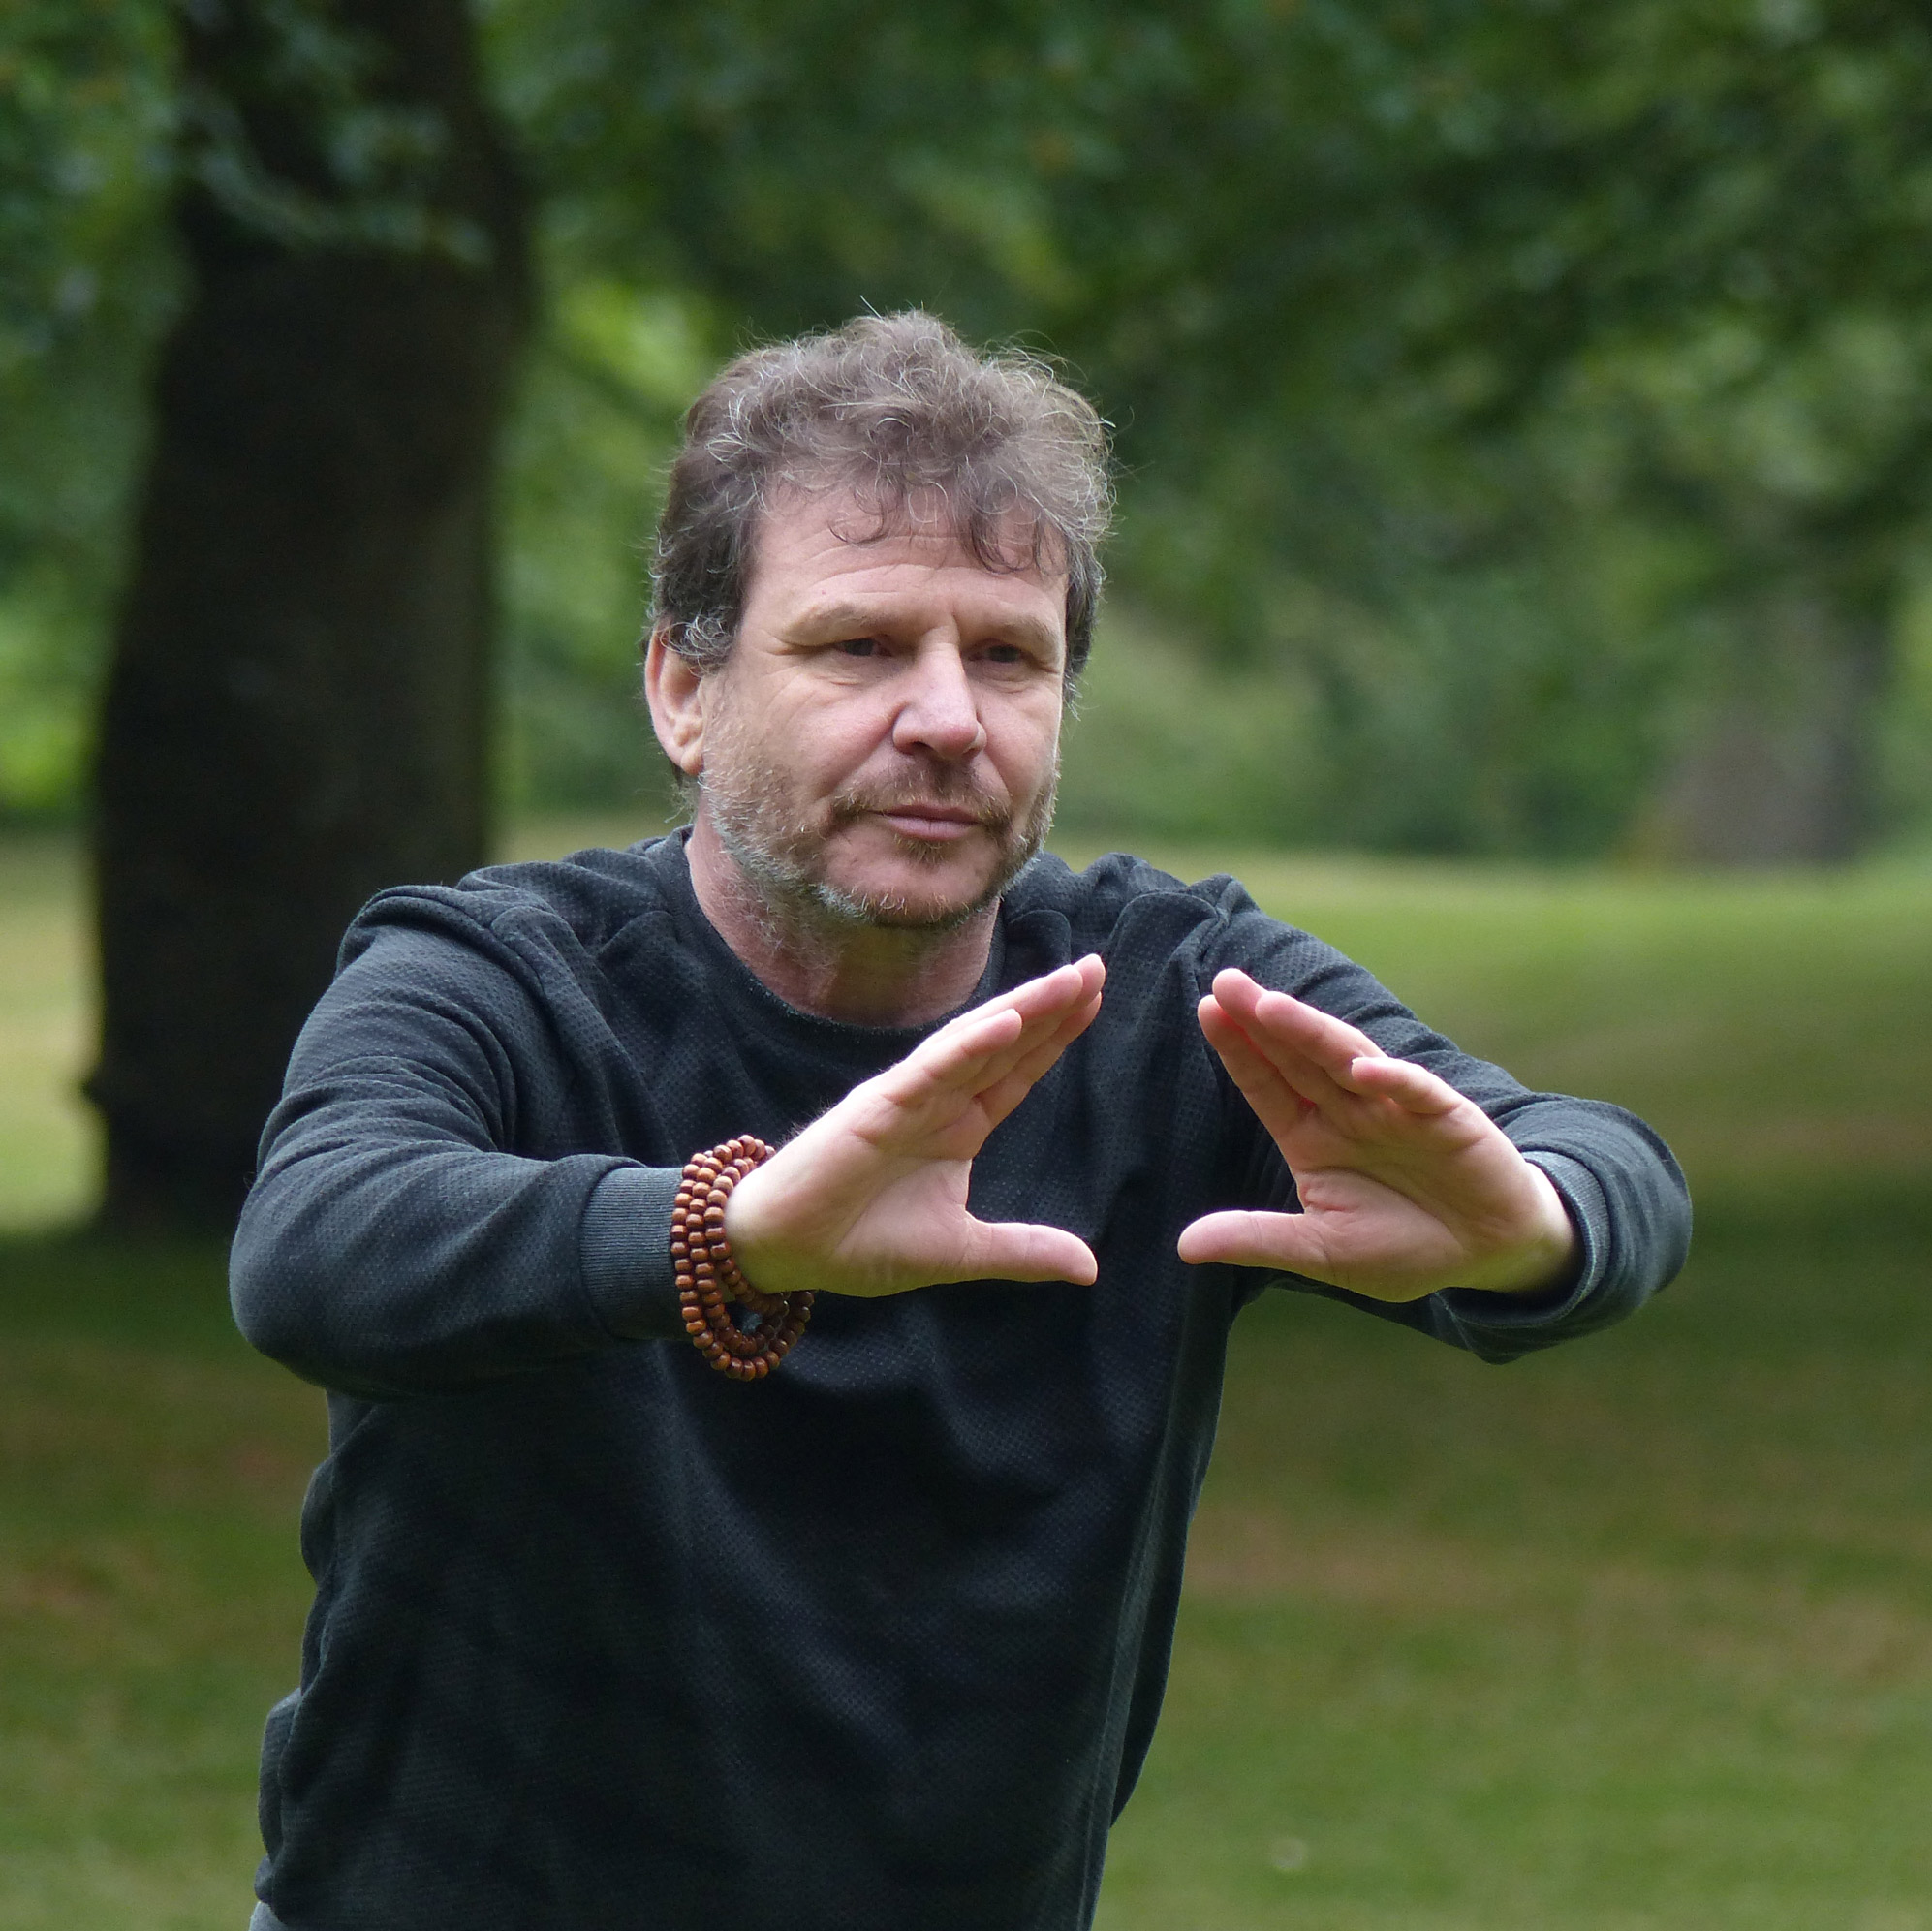 ron wiggers qigong teacher instructor instructeur